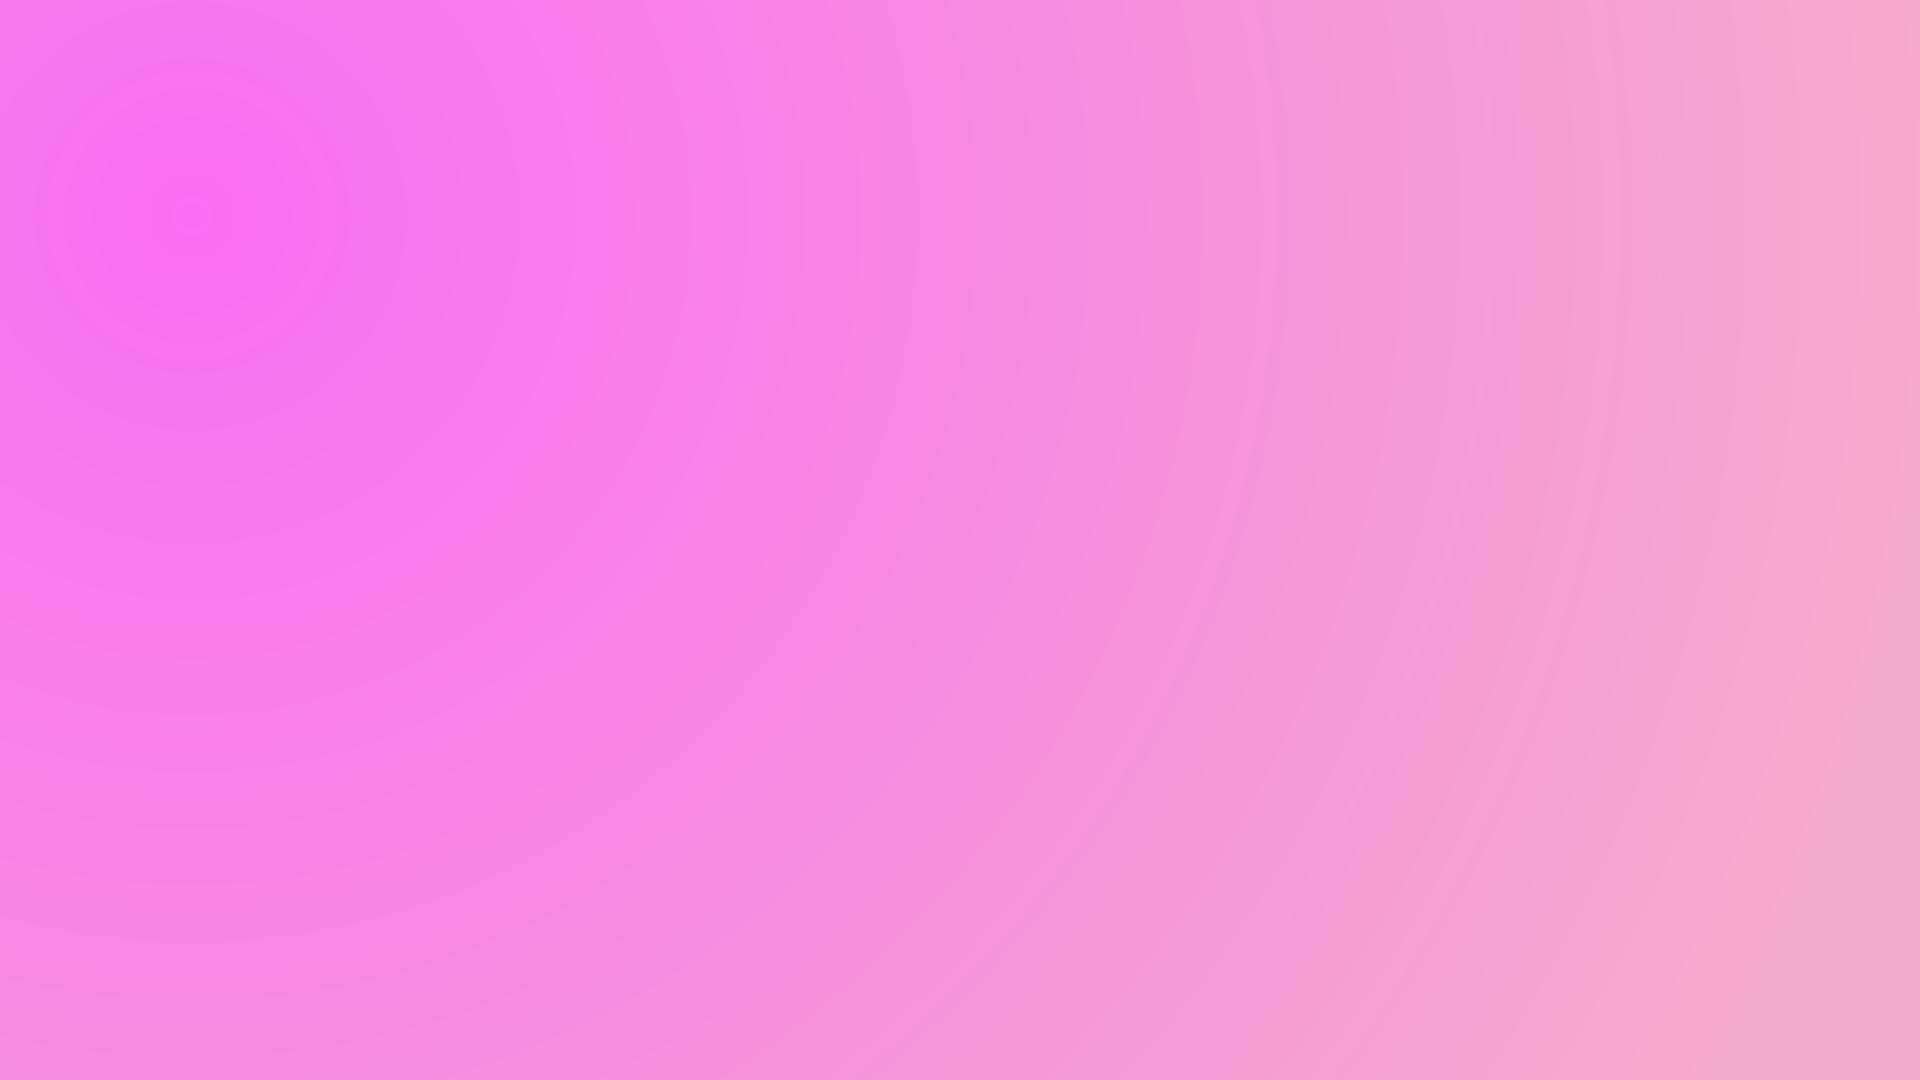 Beautiful Pink Gradient Gradient